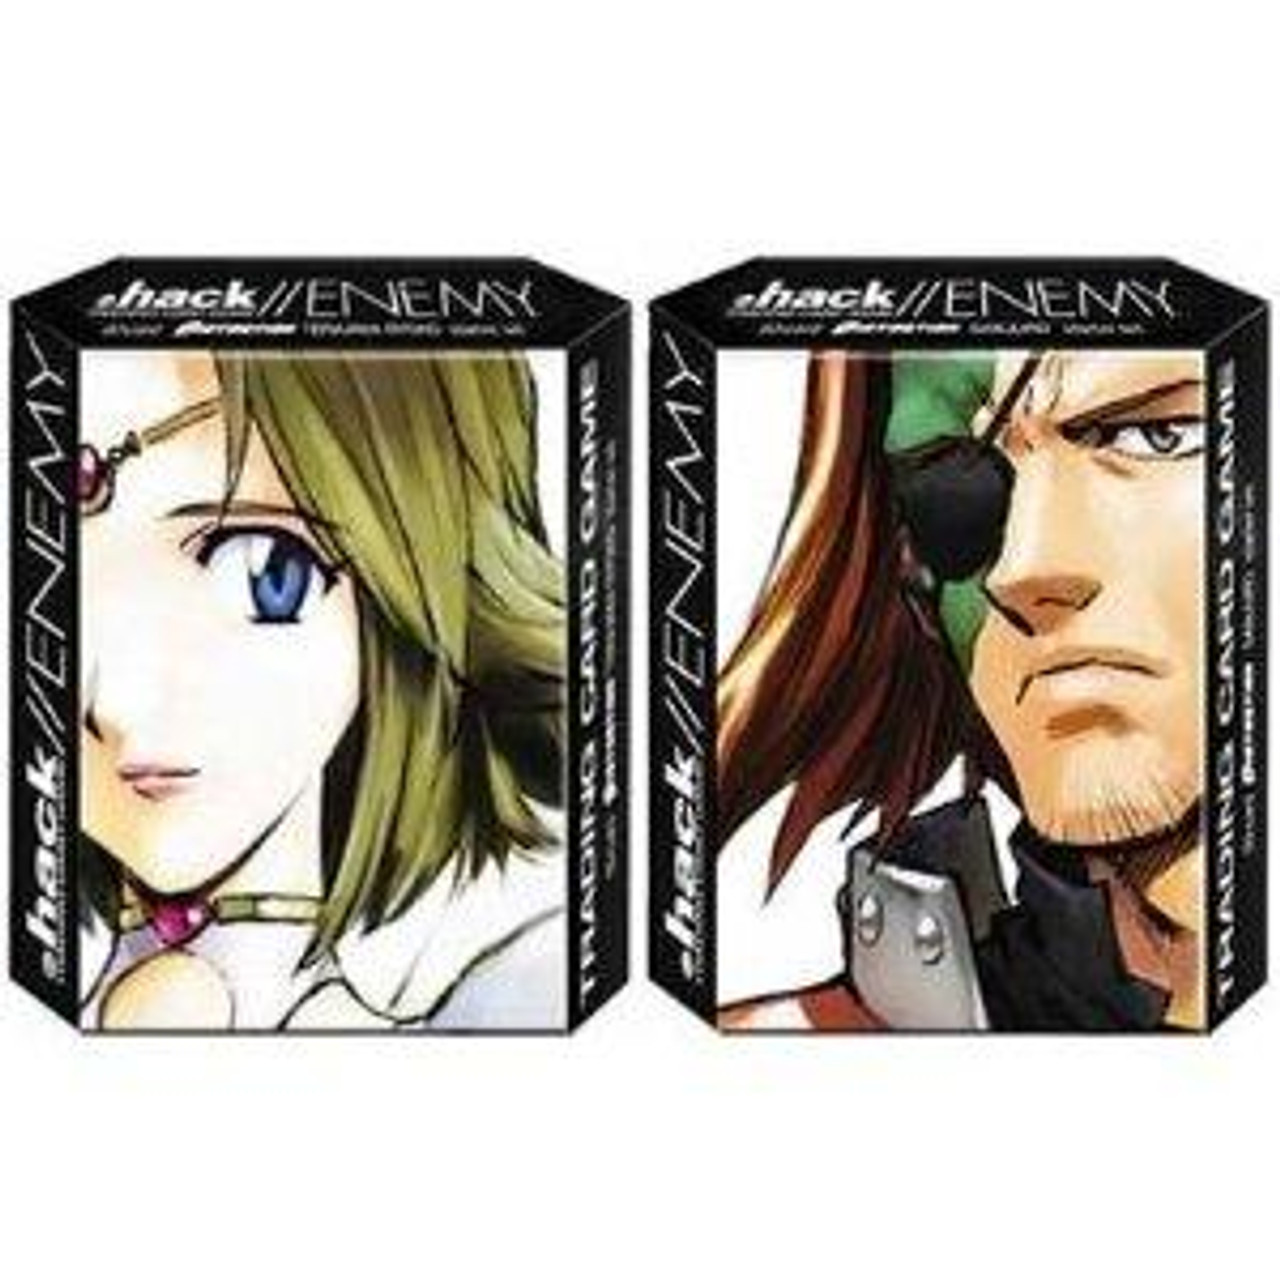 Dot .Hack/Enemy Trading Card Game Distortion Terajima Ryoko & Sanjuro Starter Theme Decks